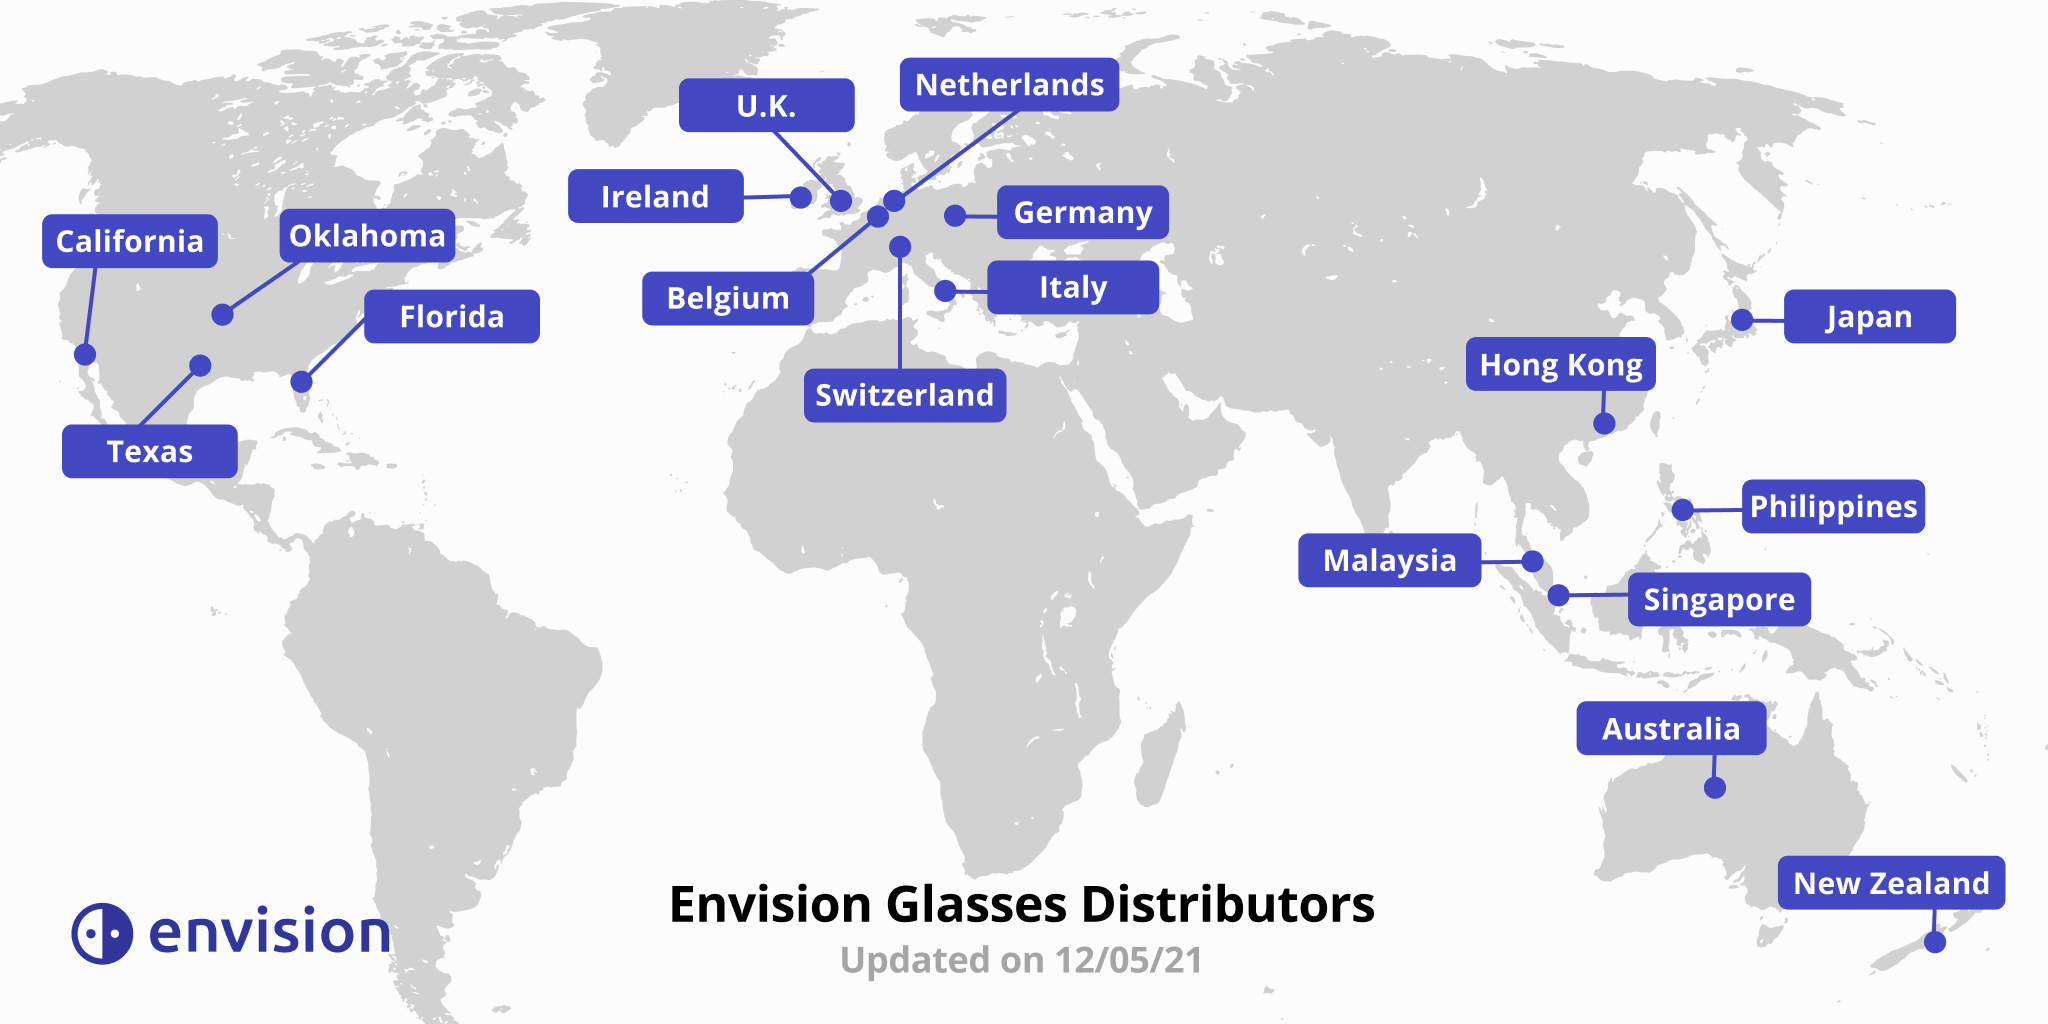 A world map visually showing all the regions where Envision Distributors are present